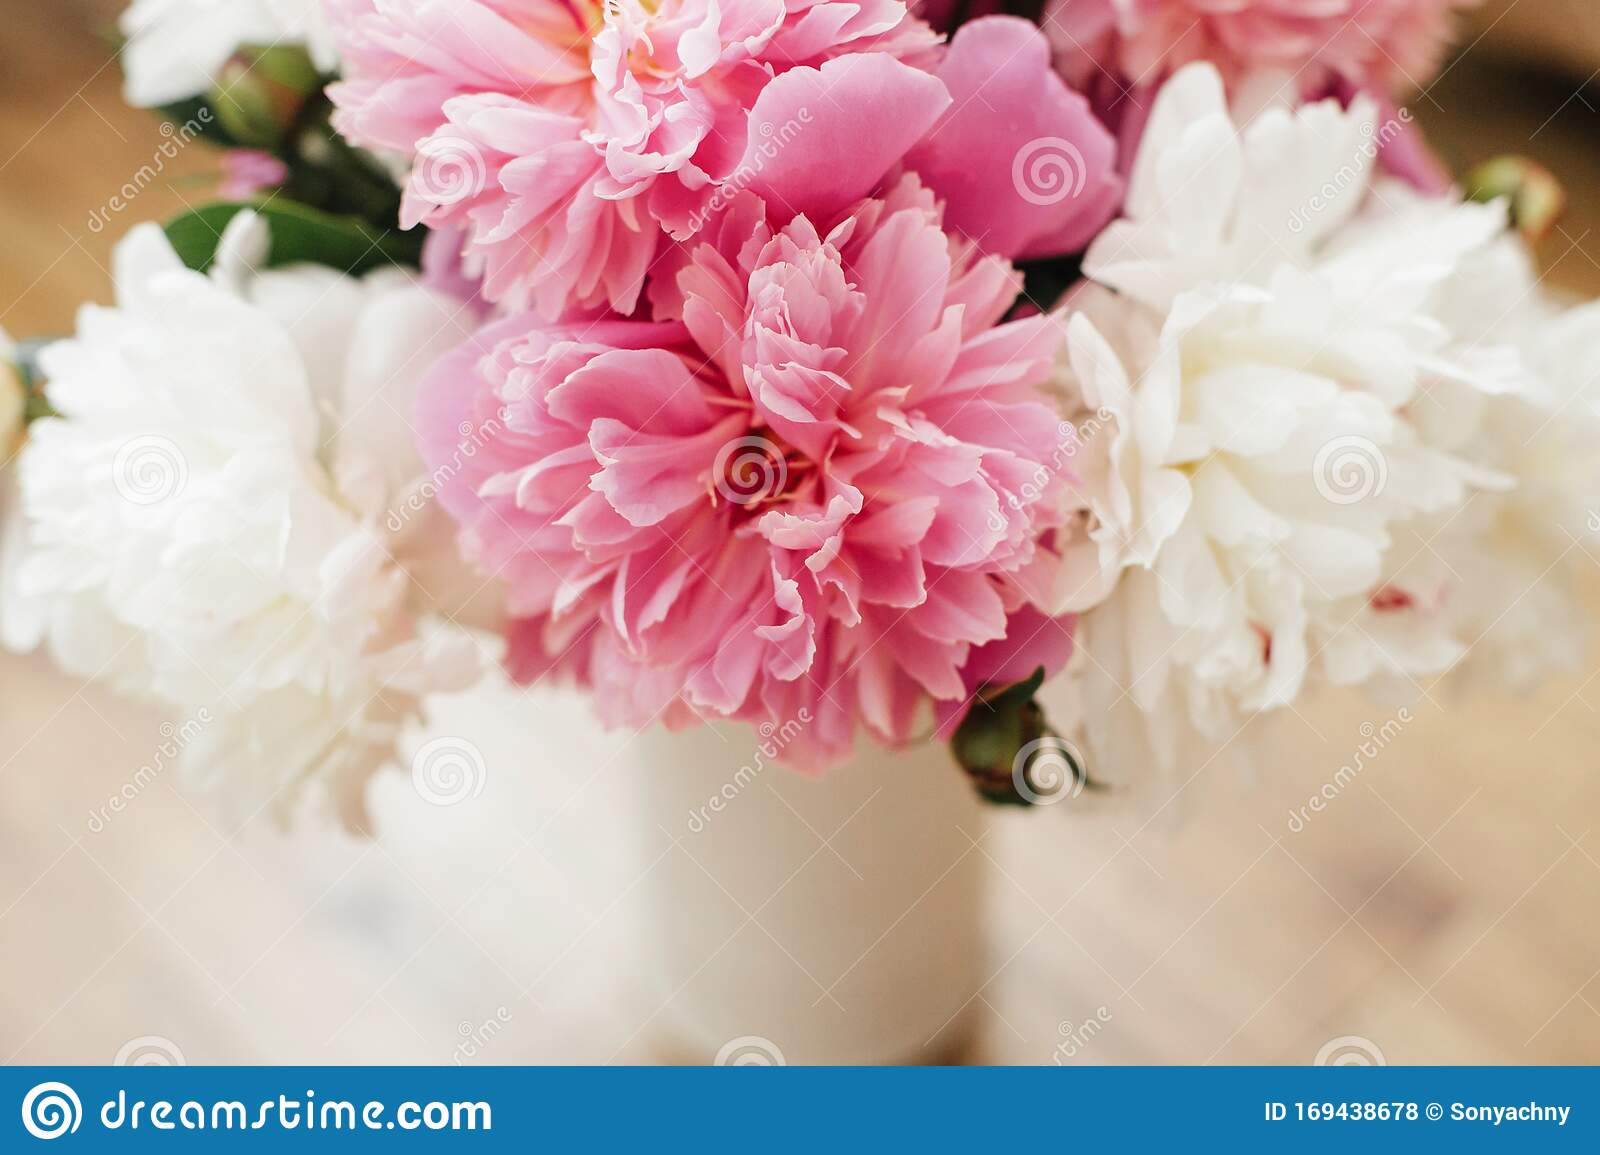 Beautiful Peony Bouquet In Modern Vase Stylish Pink And White Peonies On Wooden Background Hello Spring Happy Mothers Day Stock Photo Image Of Peony Leaf 169438678